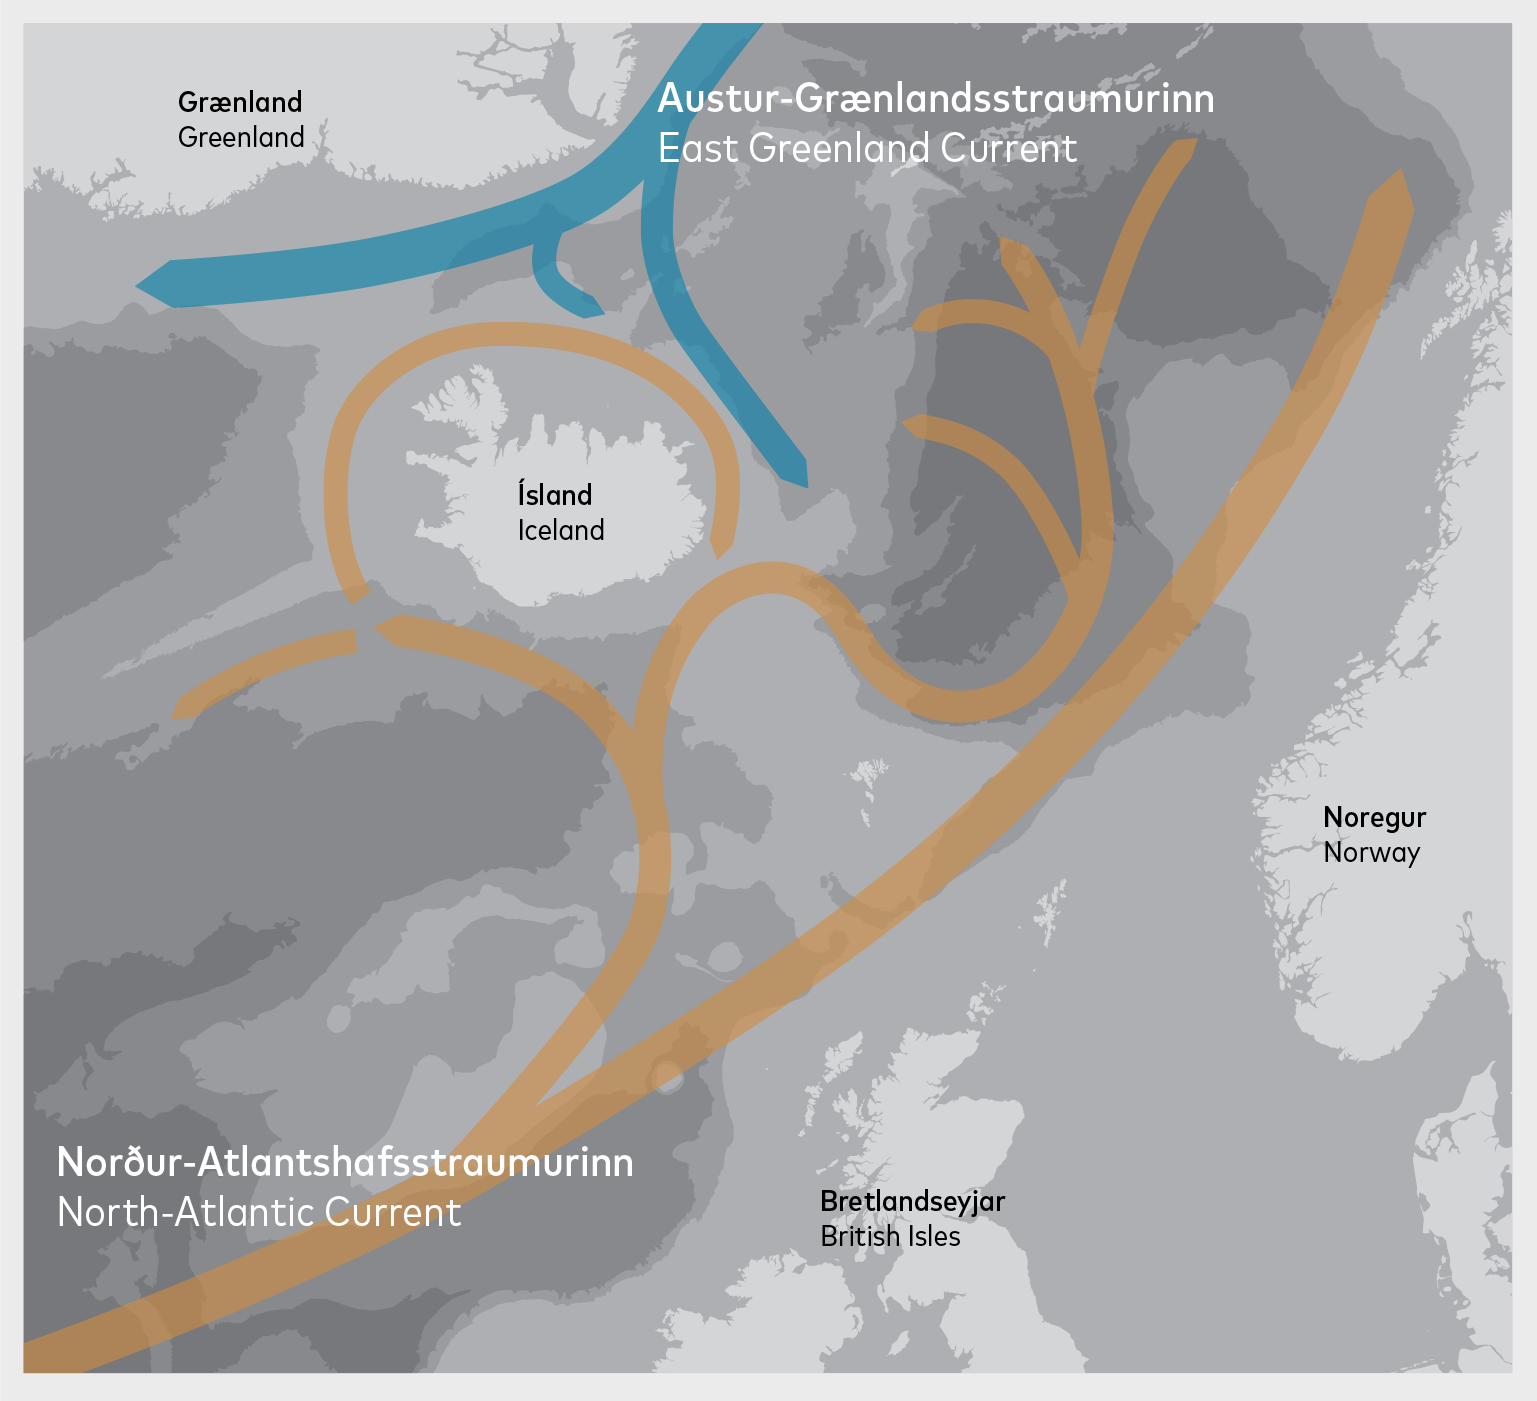 Main ocean currents in the North Atlantic. Source: Stefánsson (1999).